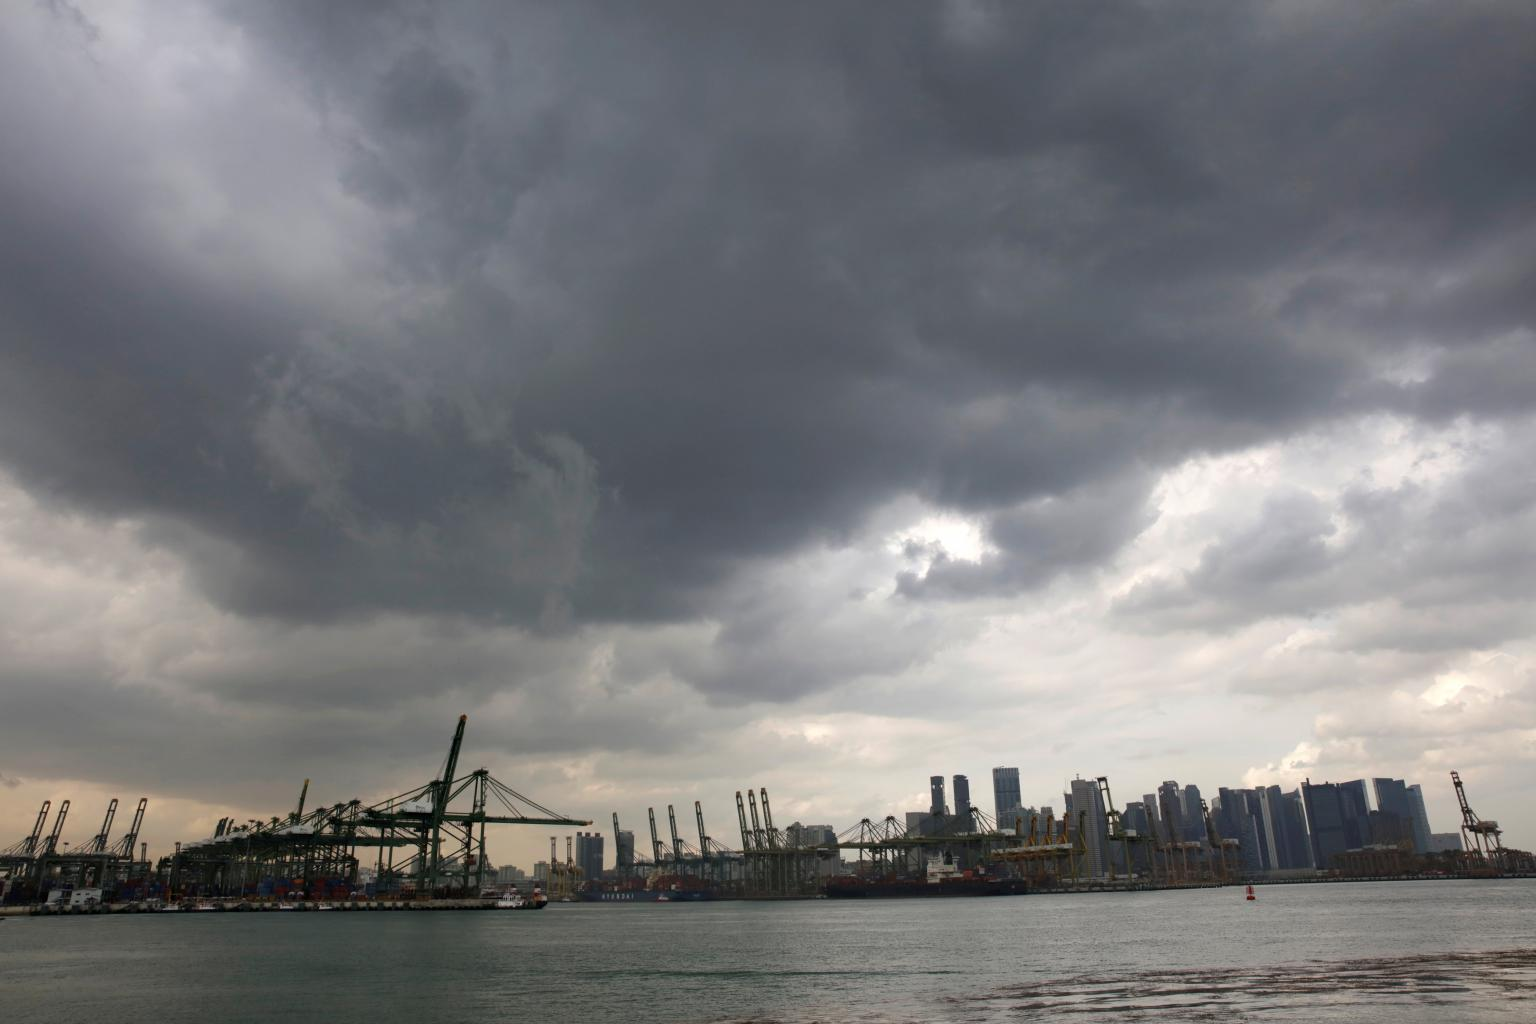 Singapore second-quarter GDP growth slows as trade tensions cloud outlook